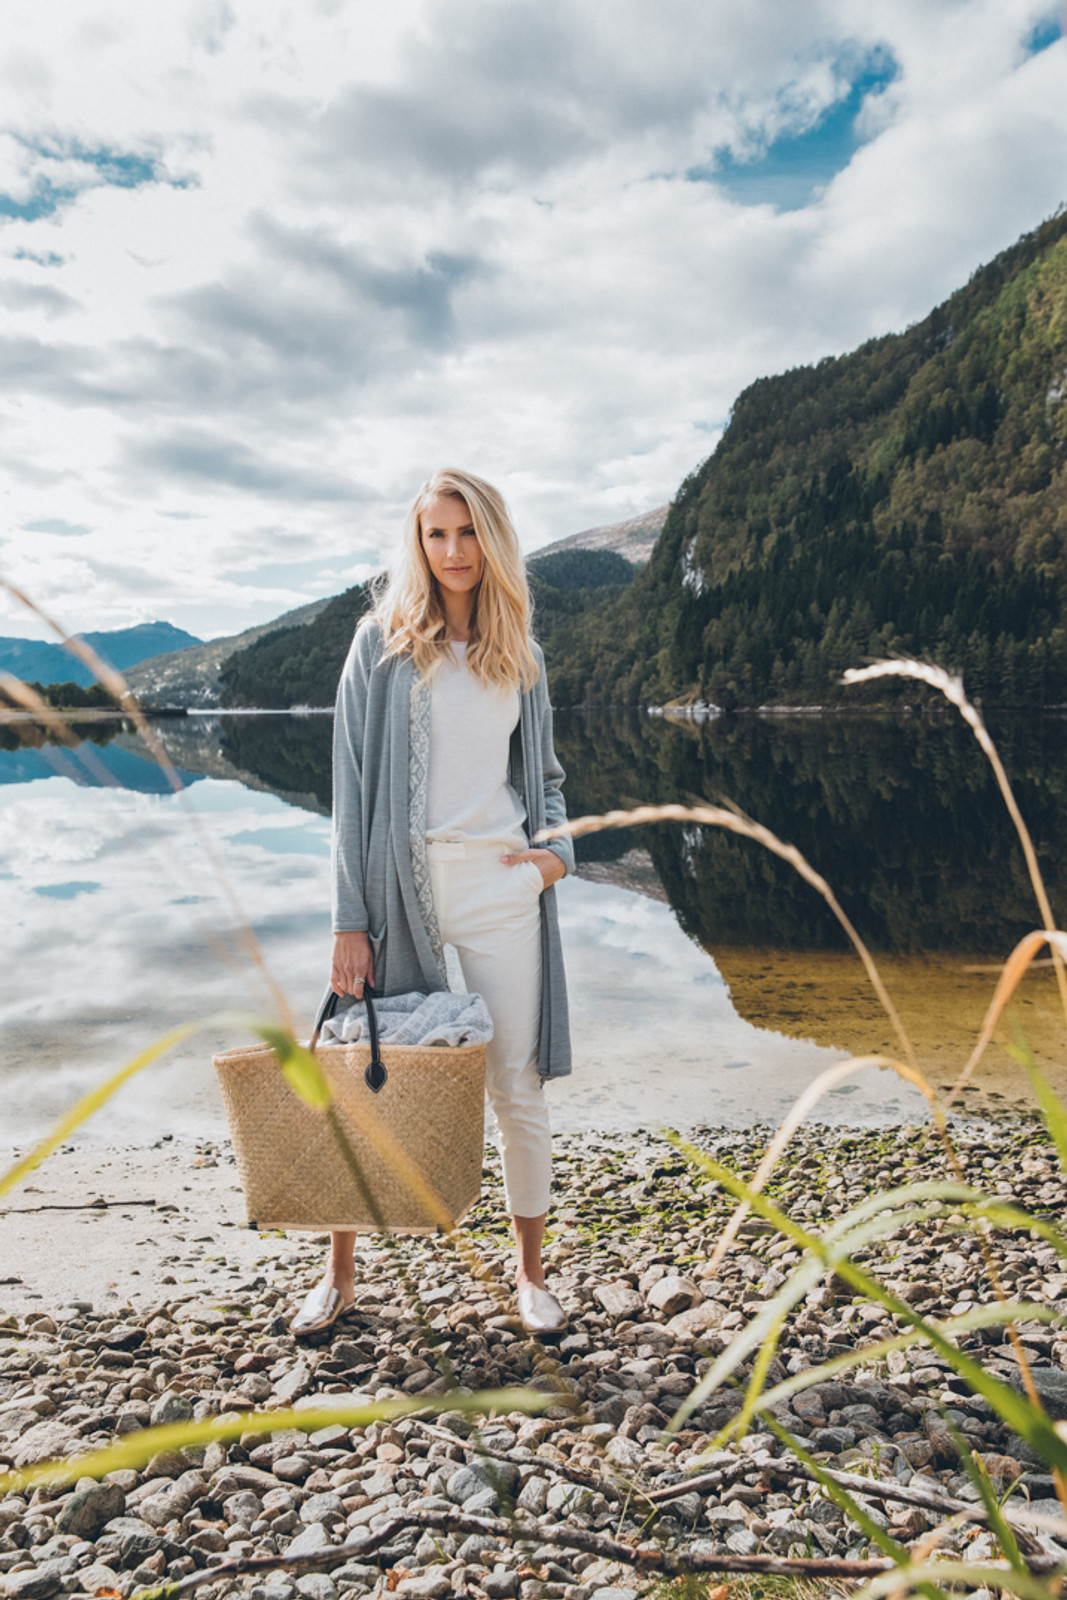 Woman ready for picnic wearing Dale of Norway's Stjerne Ladies Top in Off White Mel, 93701-A, under a Nora ladies jacket in Grau Vig/Off White, 83331-T